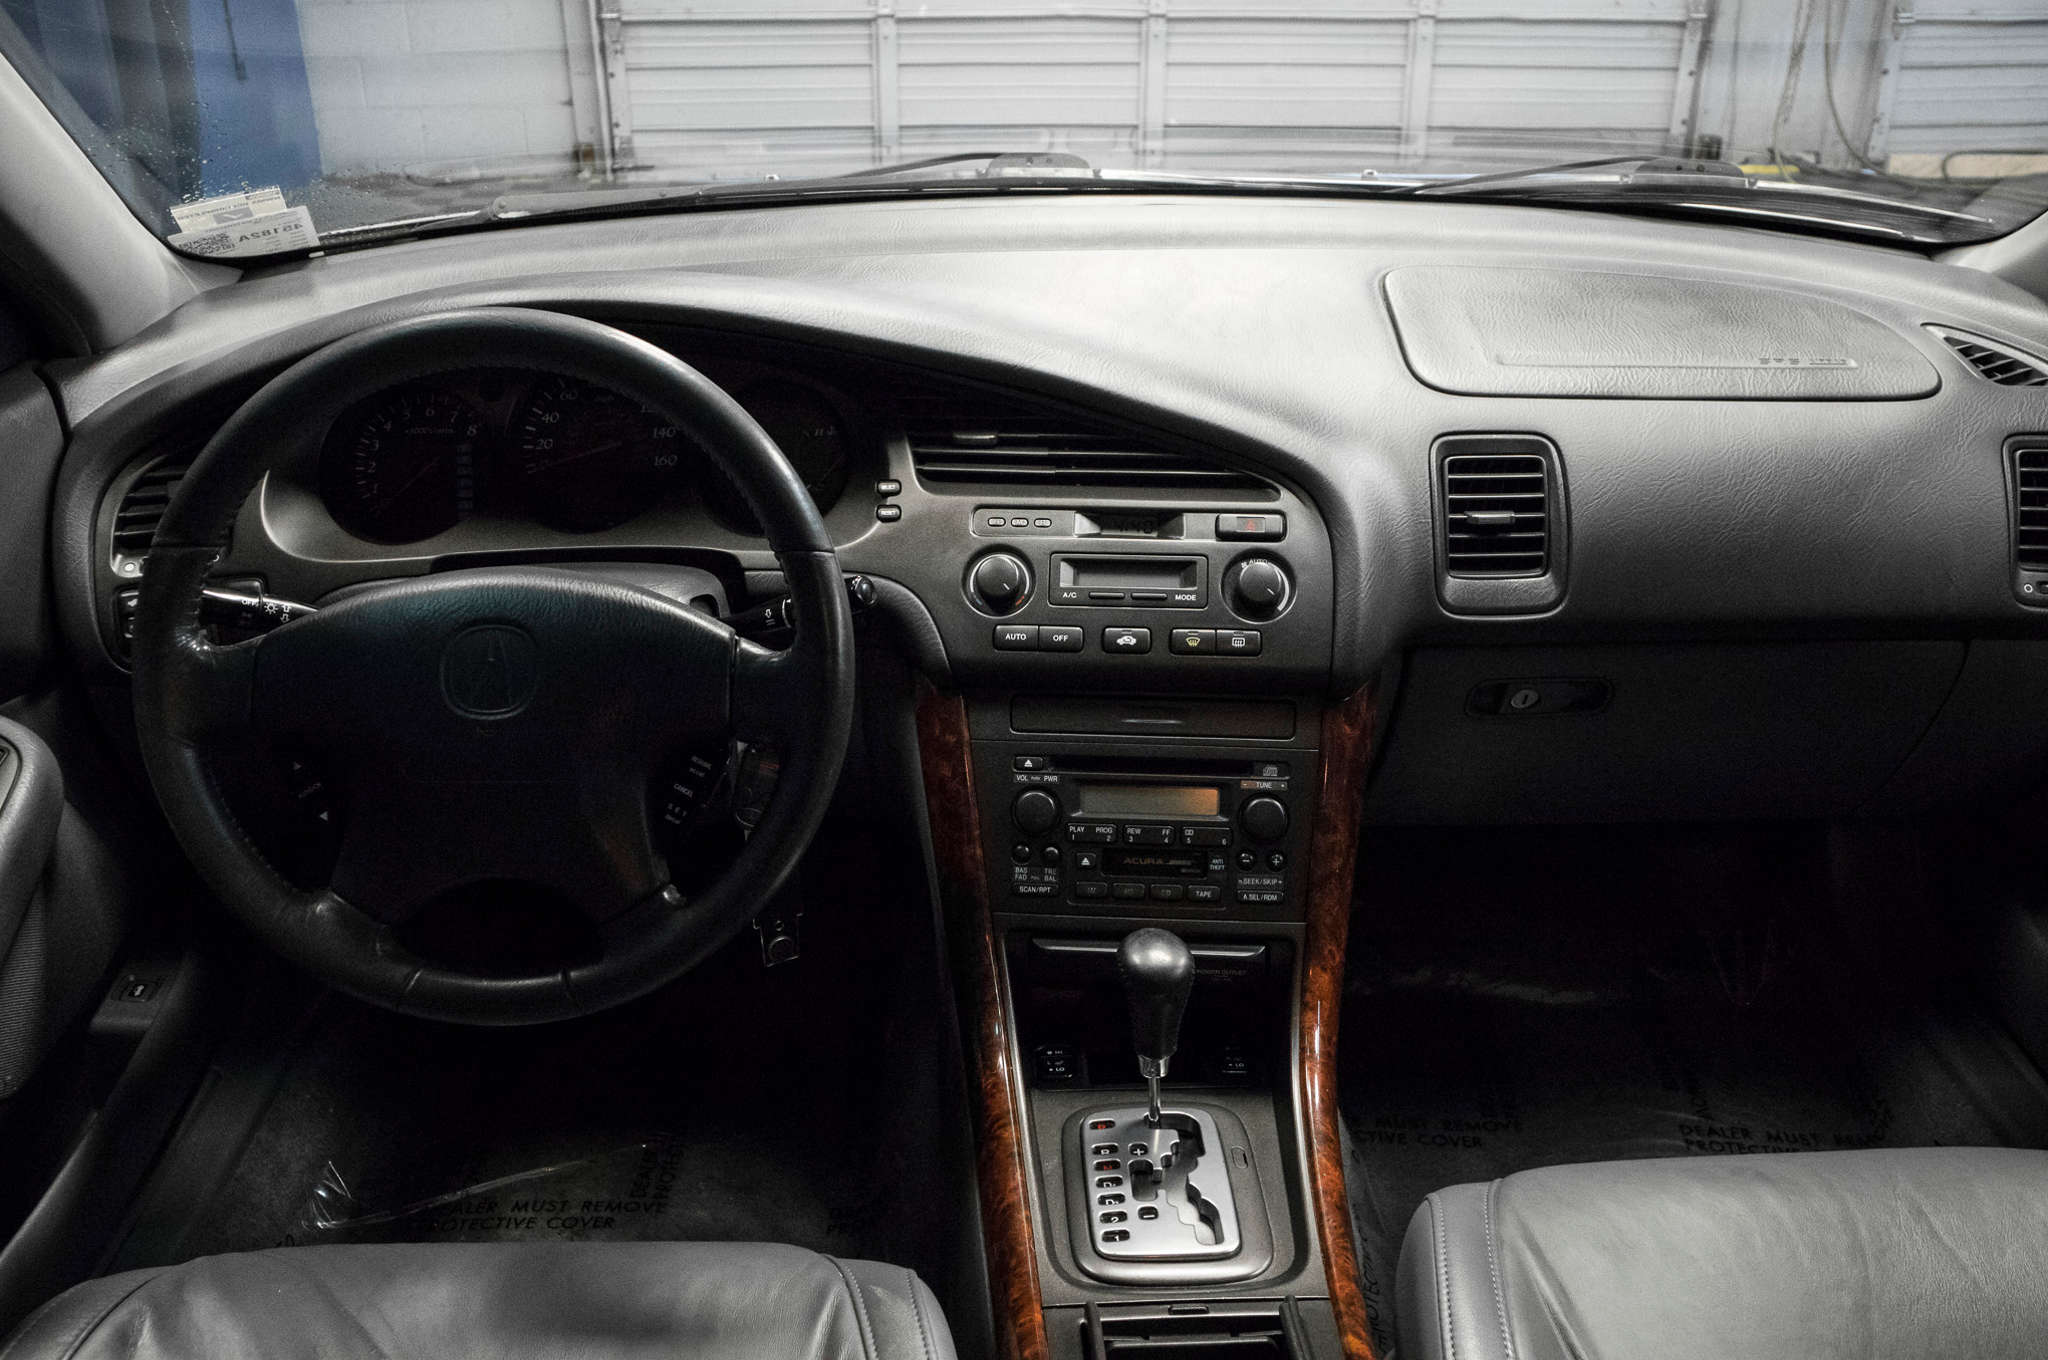 auto view left acura sale gray tl denver en for title carfinder in copart auctions co south on lot online salvage